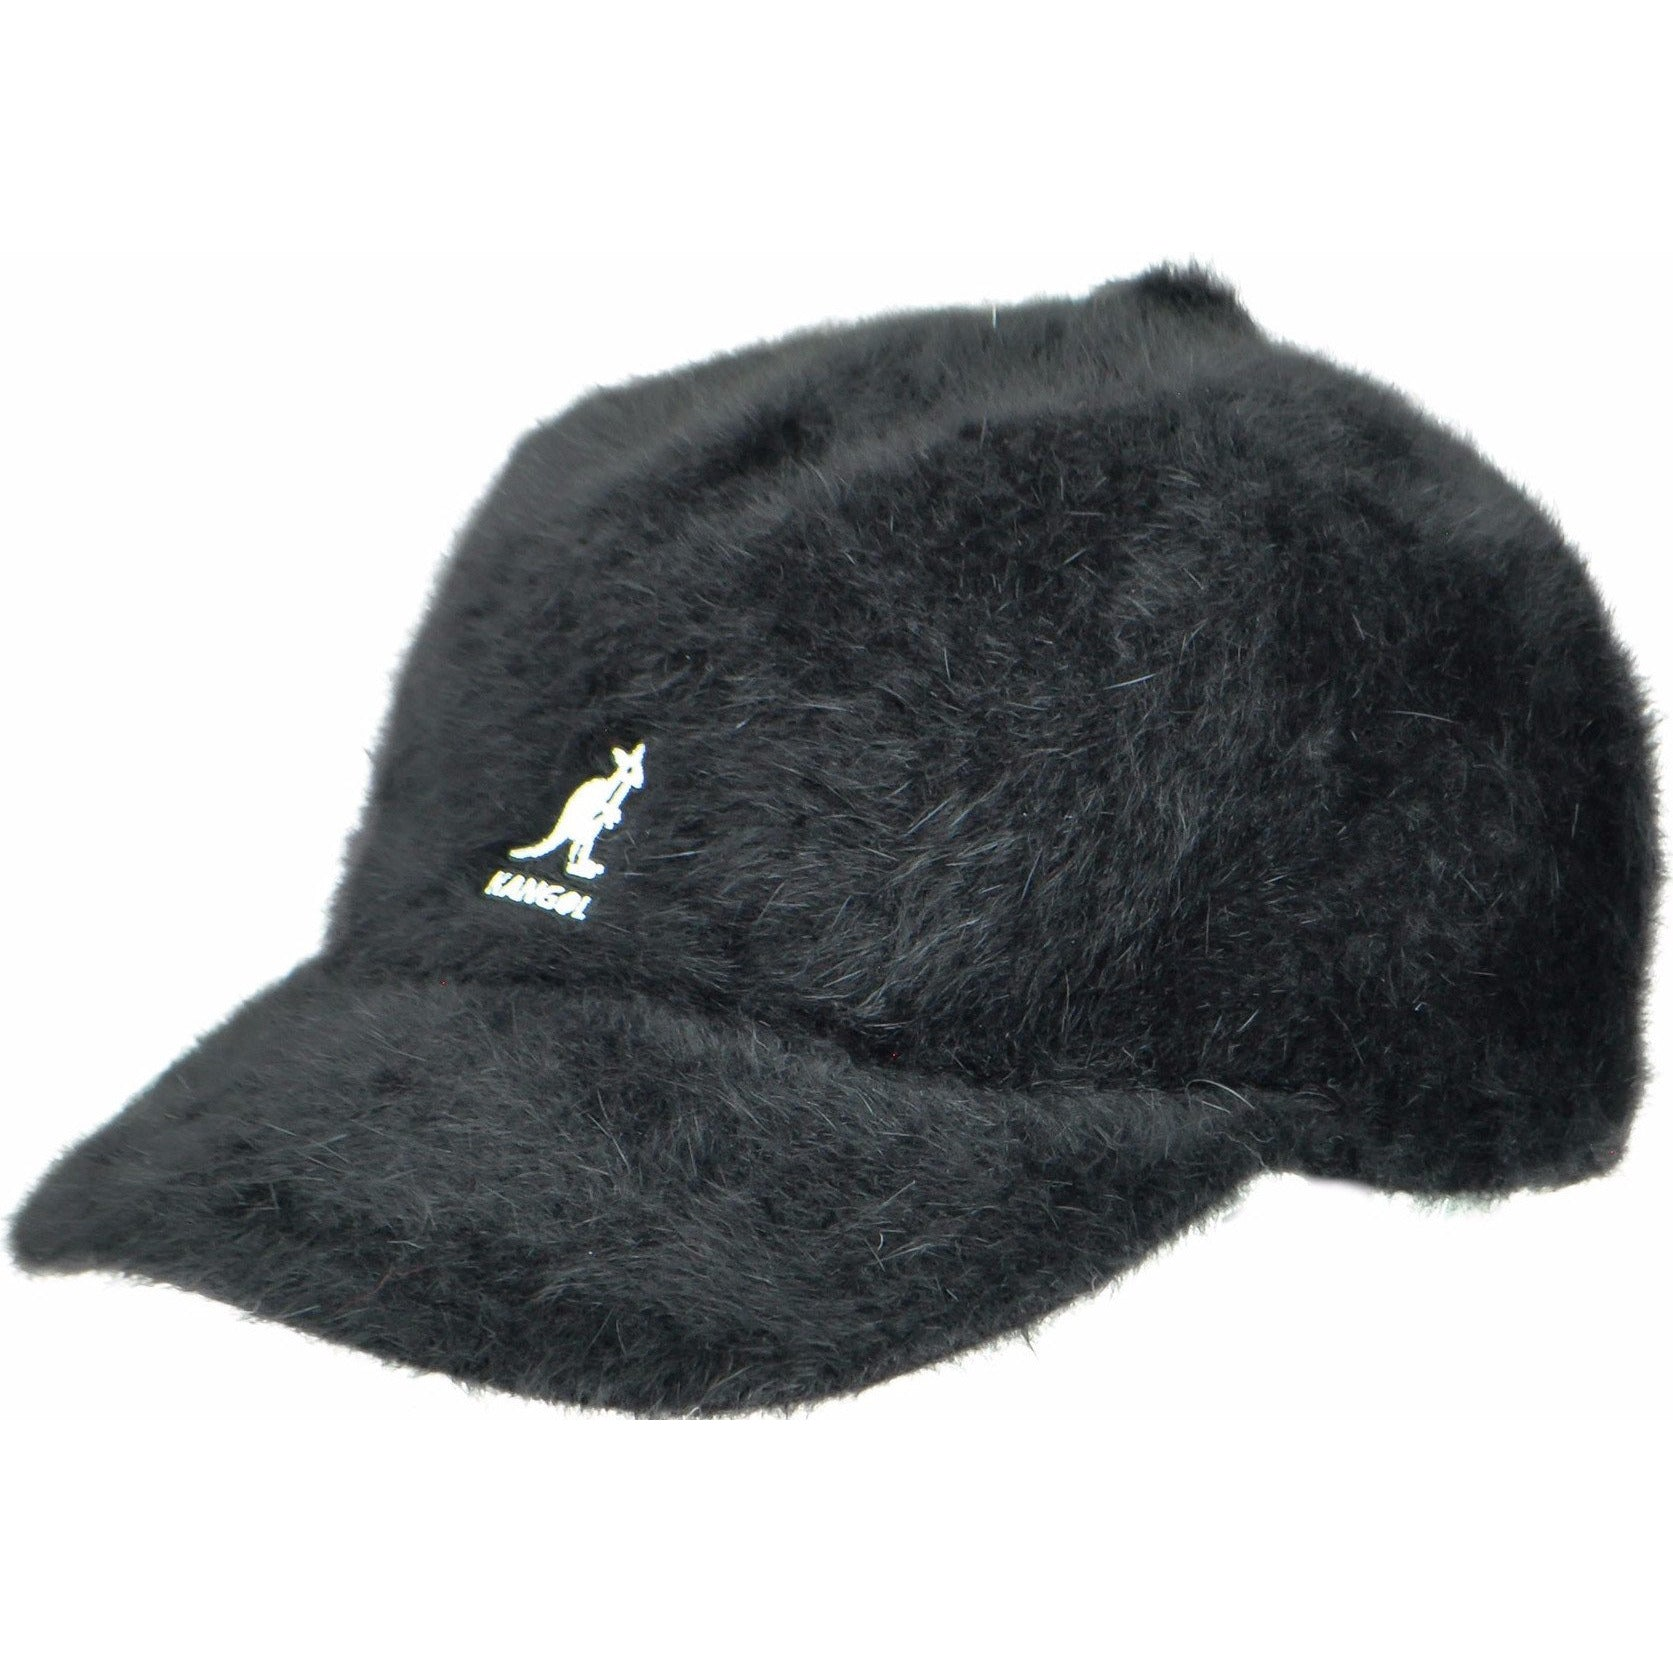 Furgora Links Baseball Cap by Kangol – Levine Hat Co. 5aeda7ff5ce